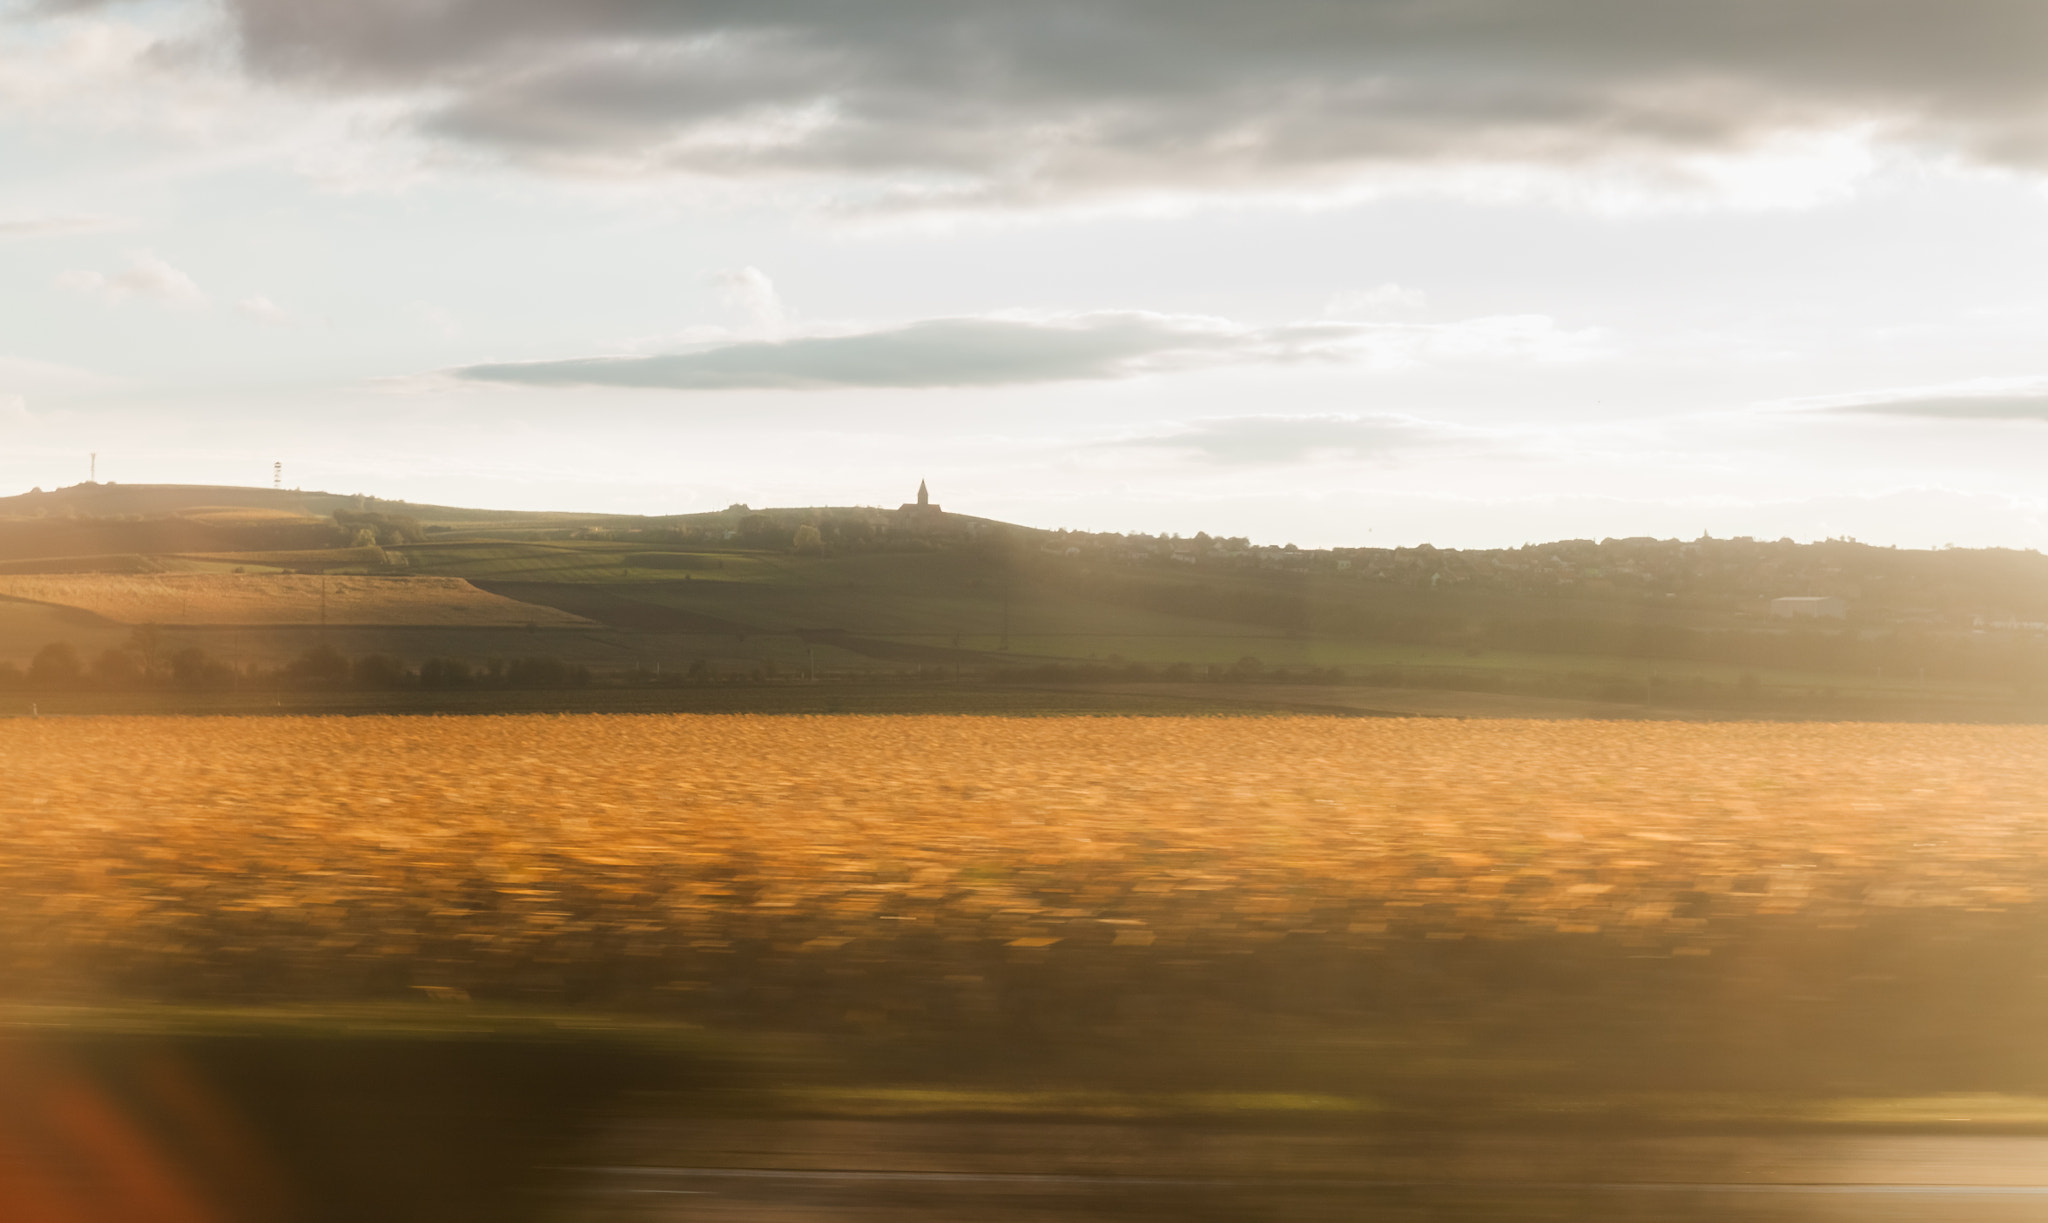 Photograph Journey Home by Michal Paulech on 500px